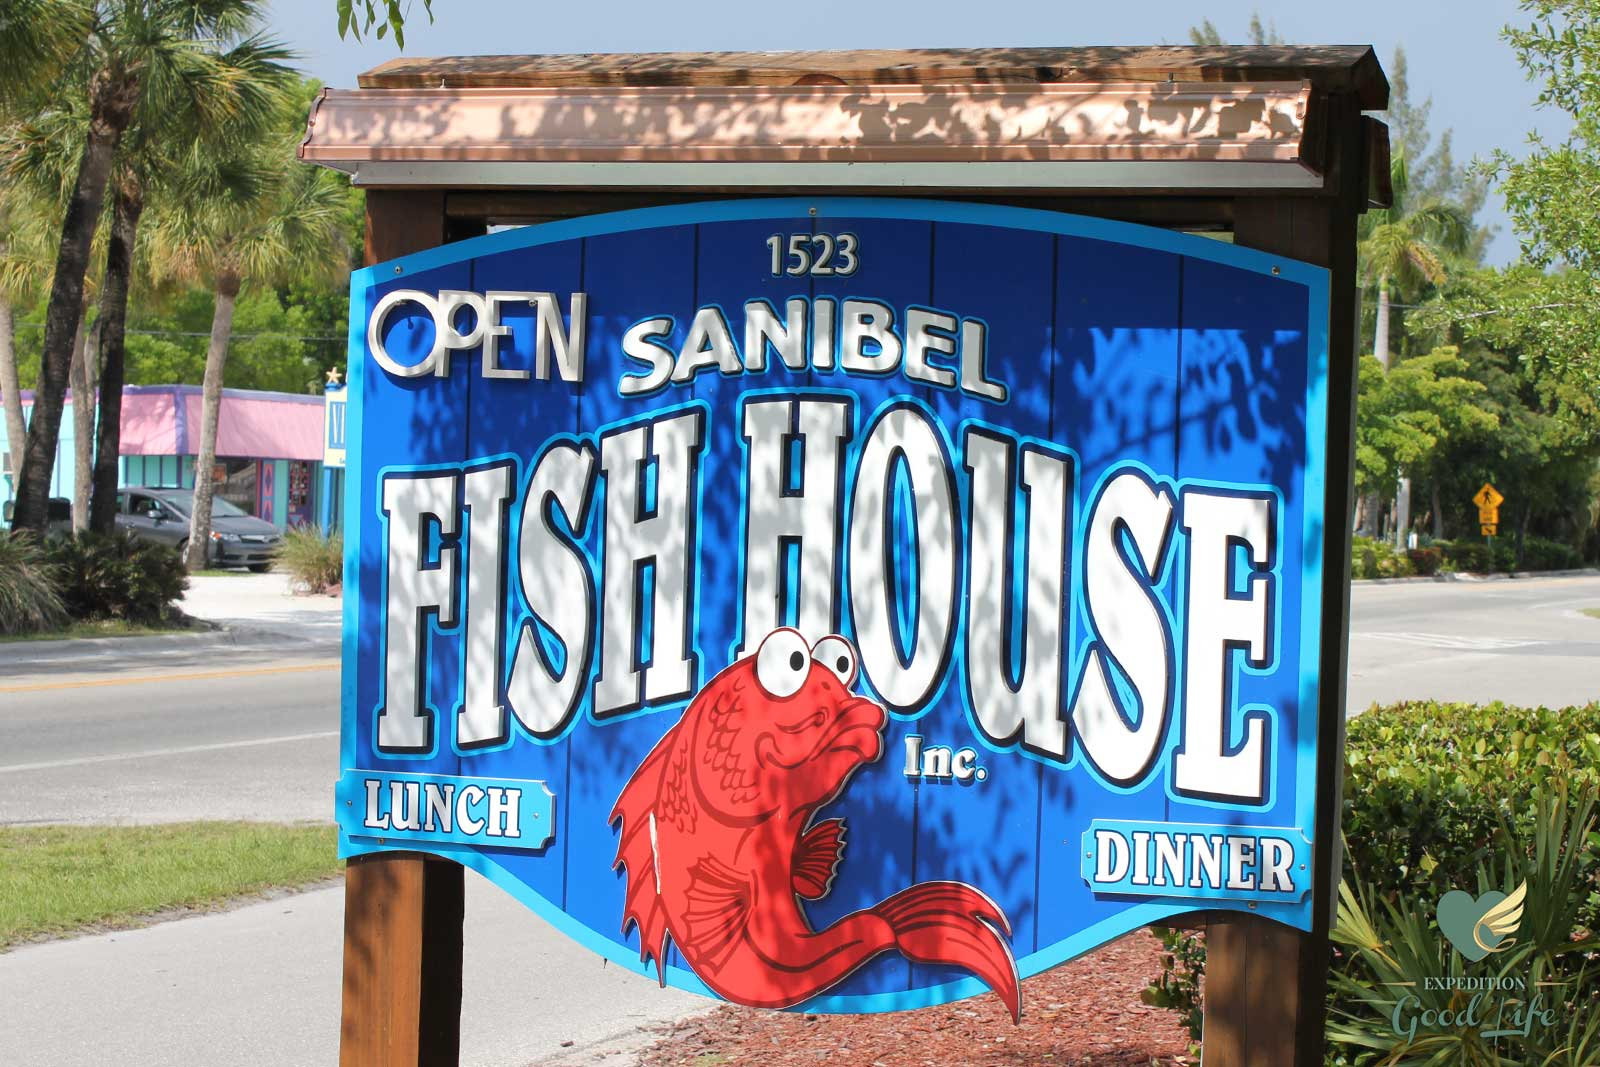 Sanibel fish house review expedition good life for Sanibel fish house